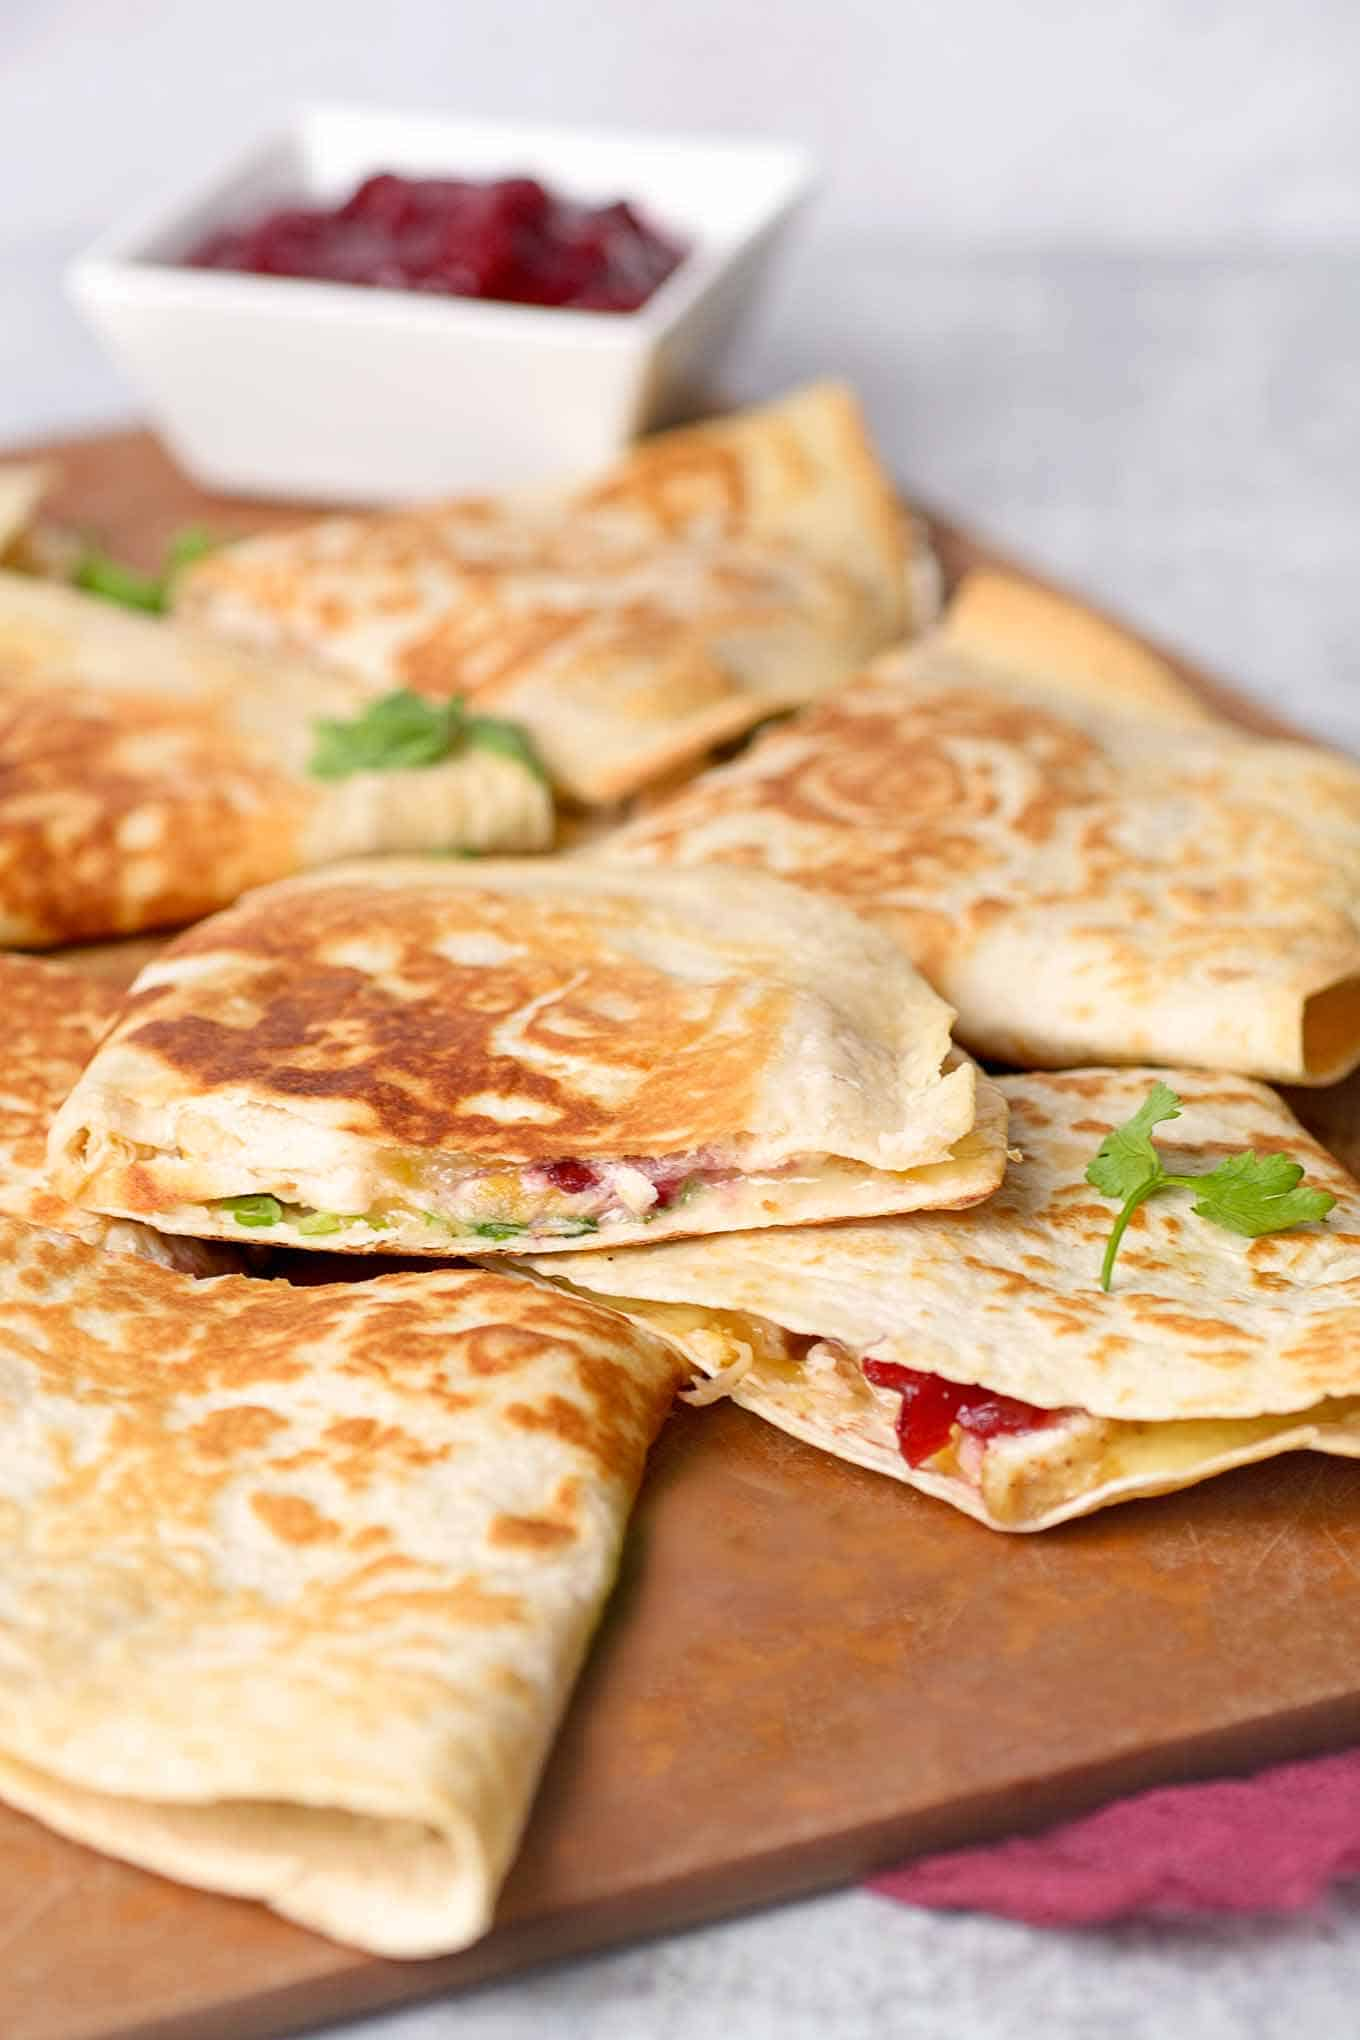 Wedges of turkey quesadillas on a cutting board with a dish of cranberry sauce in the background.